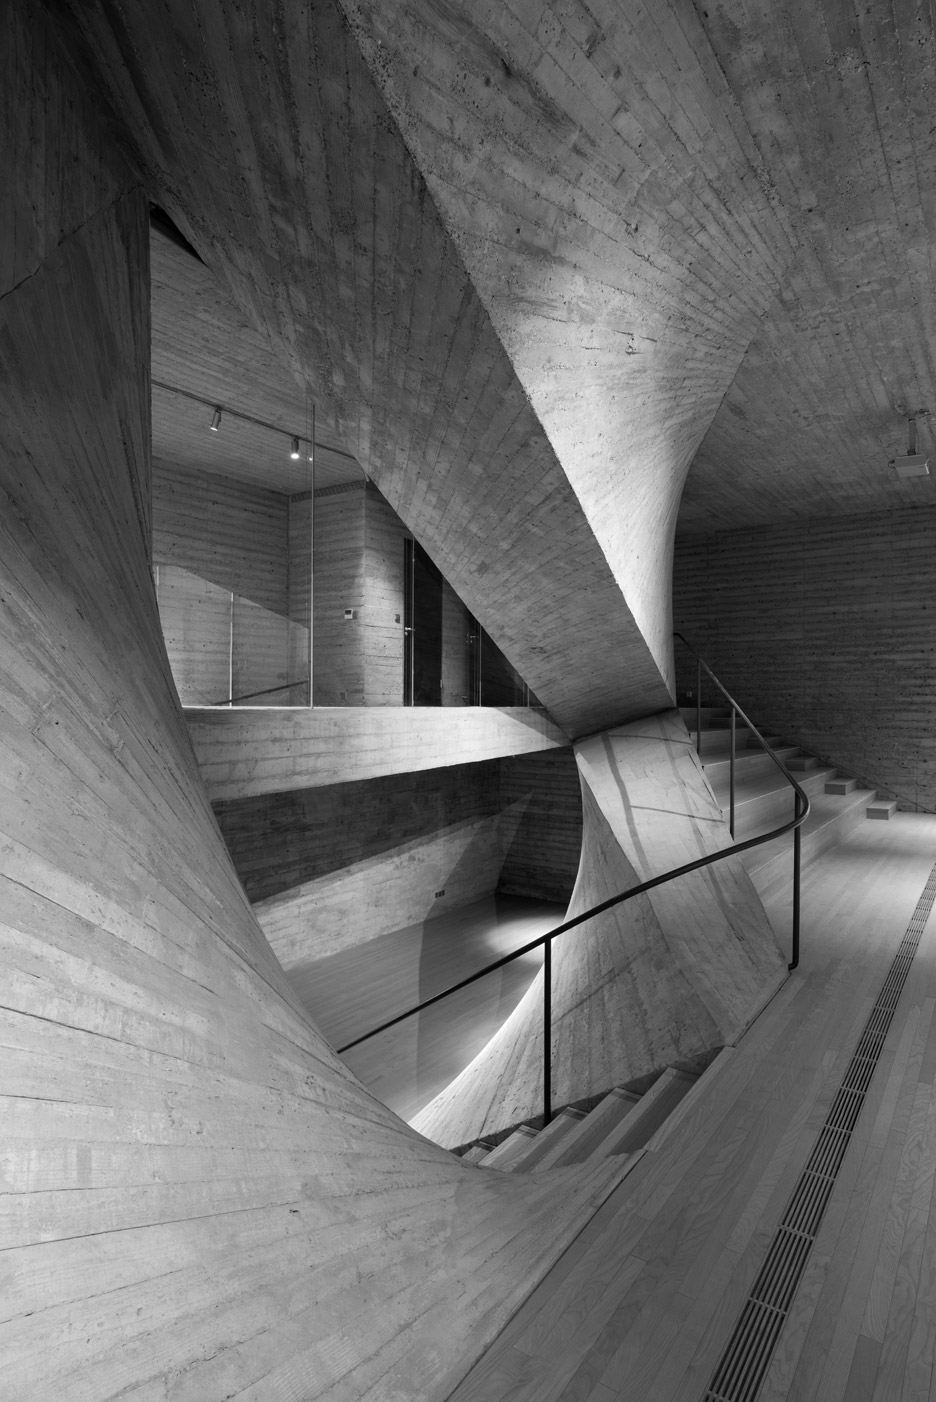 Cbf Cement Board Fabricators Residential Projects: Archi-union Architects